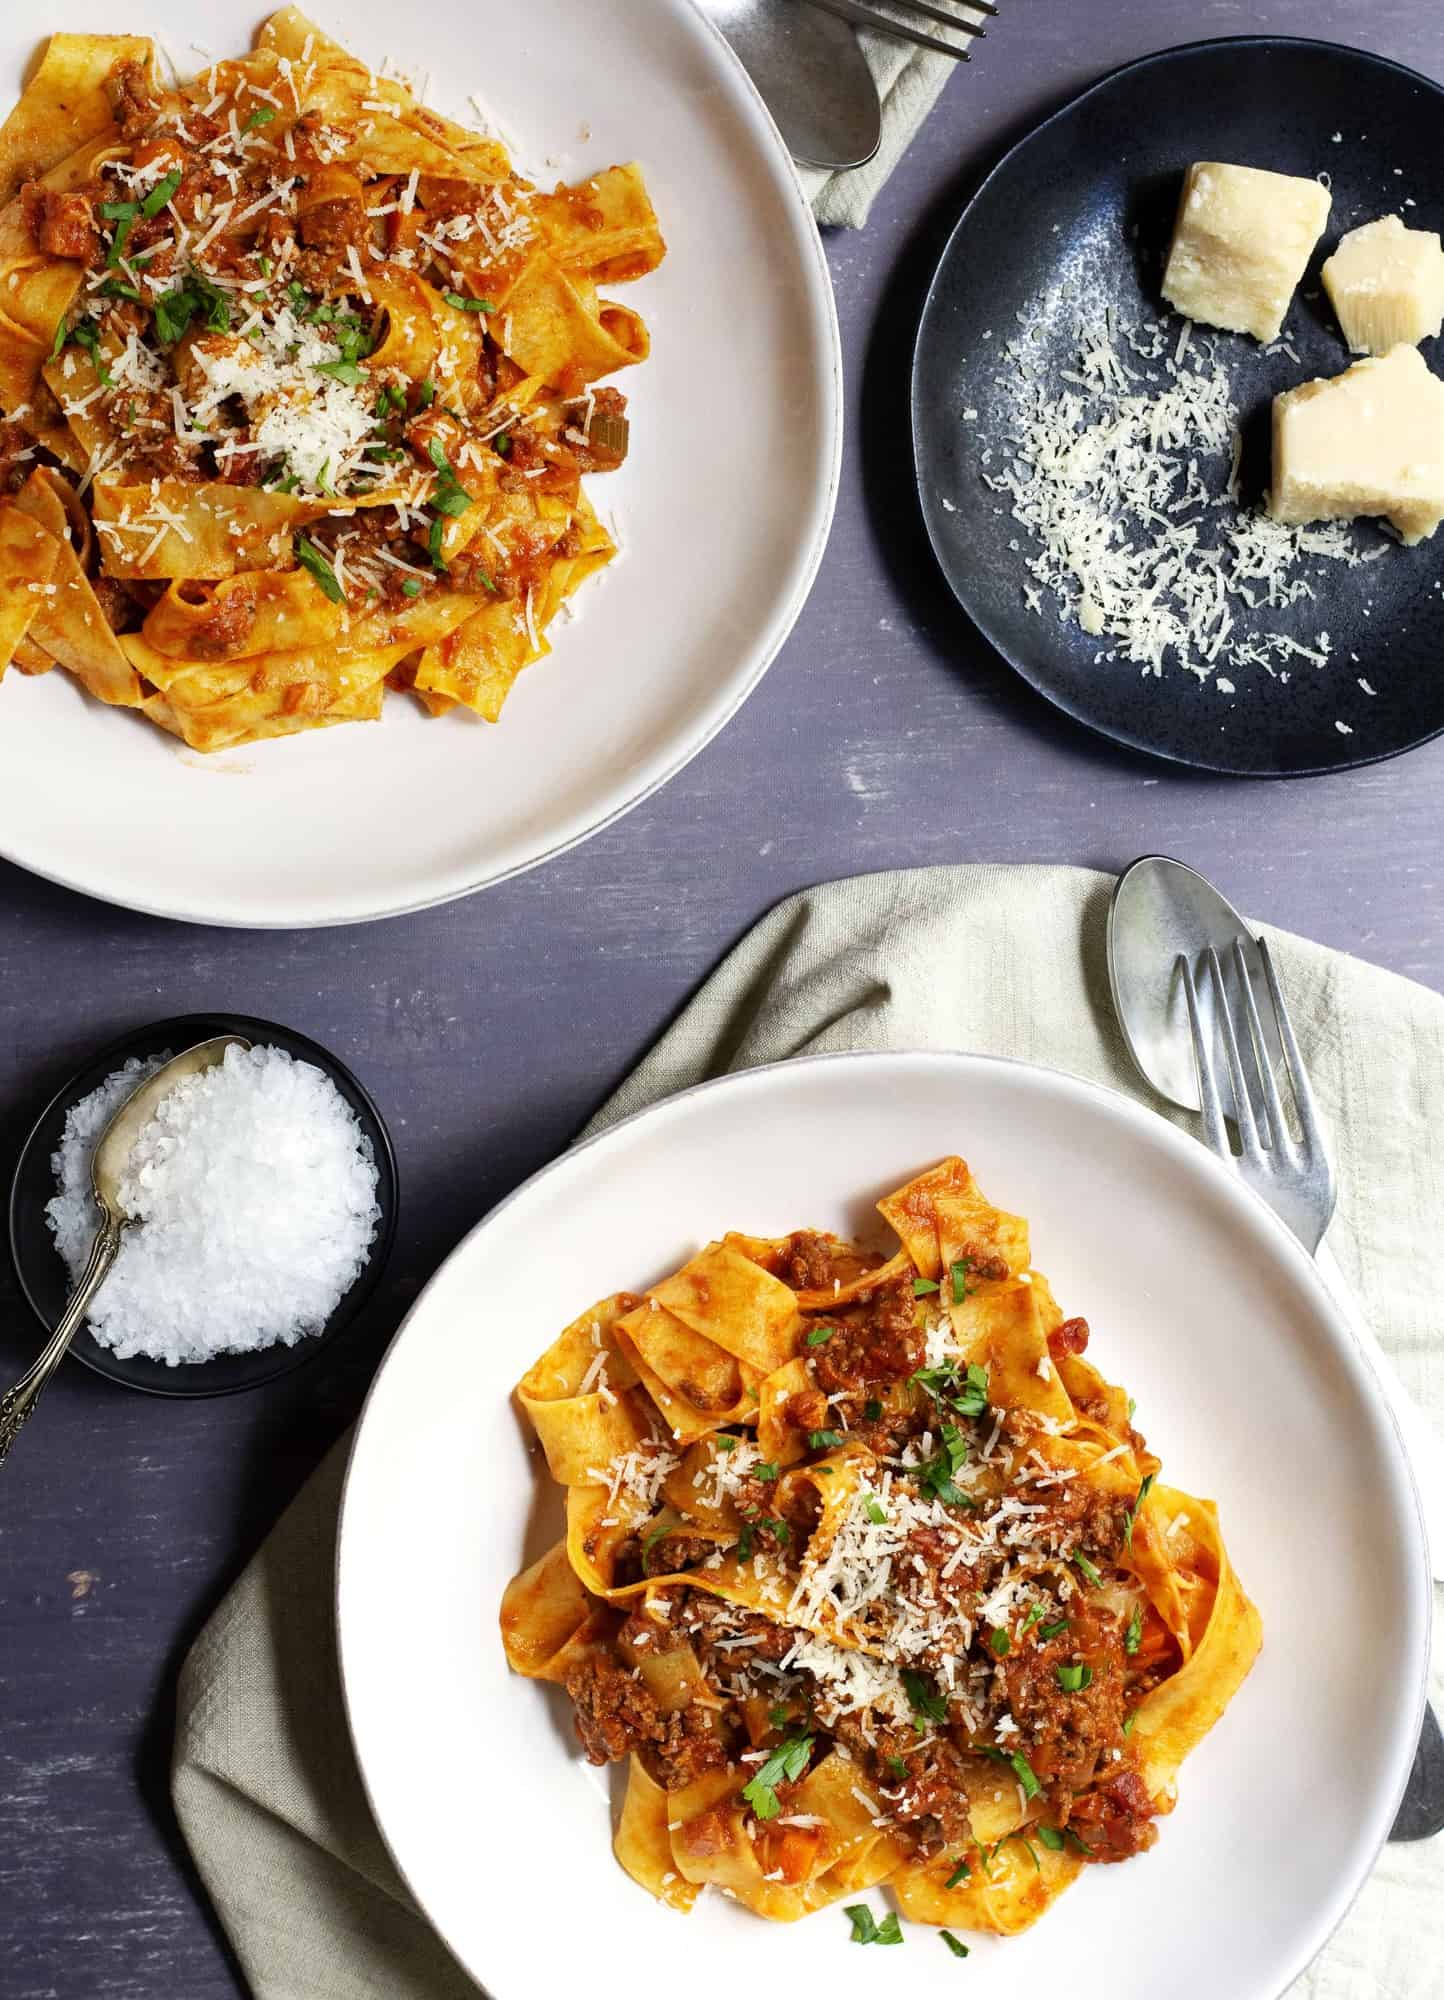 Bolognese Sauce served with pappardelle in shallow white bowls